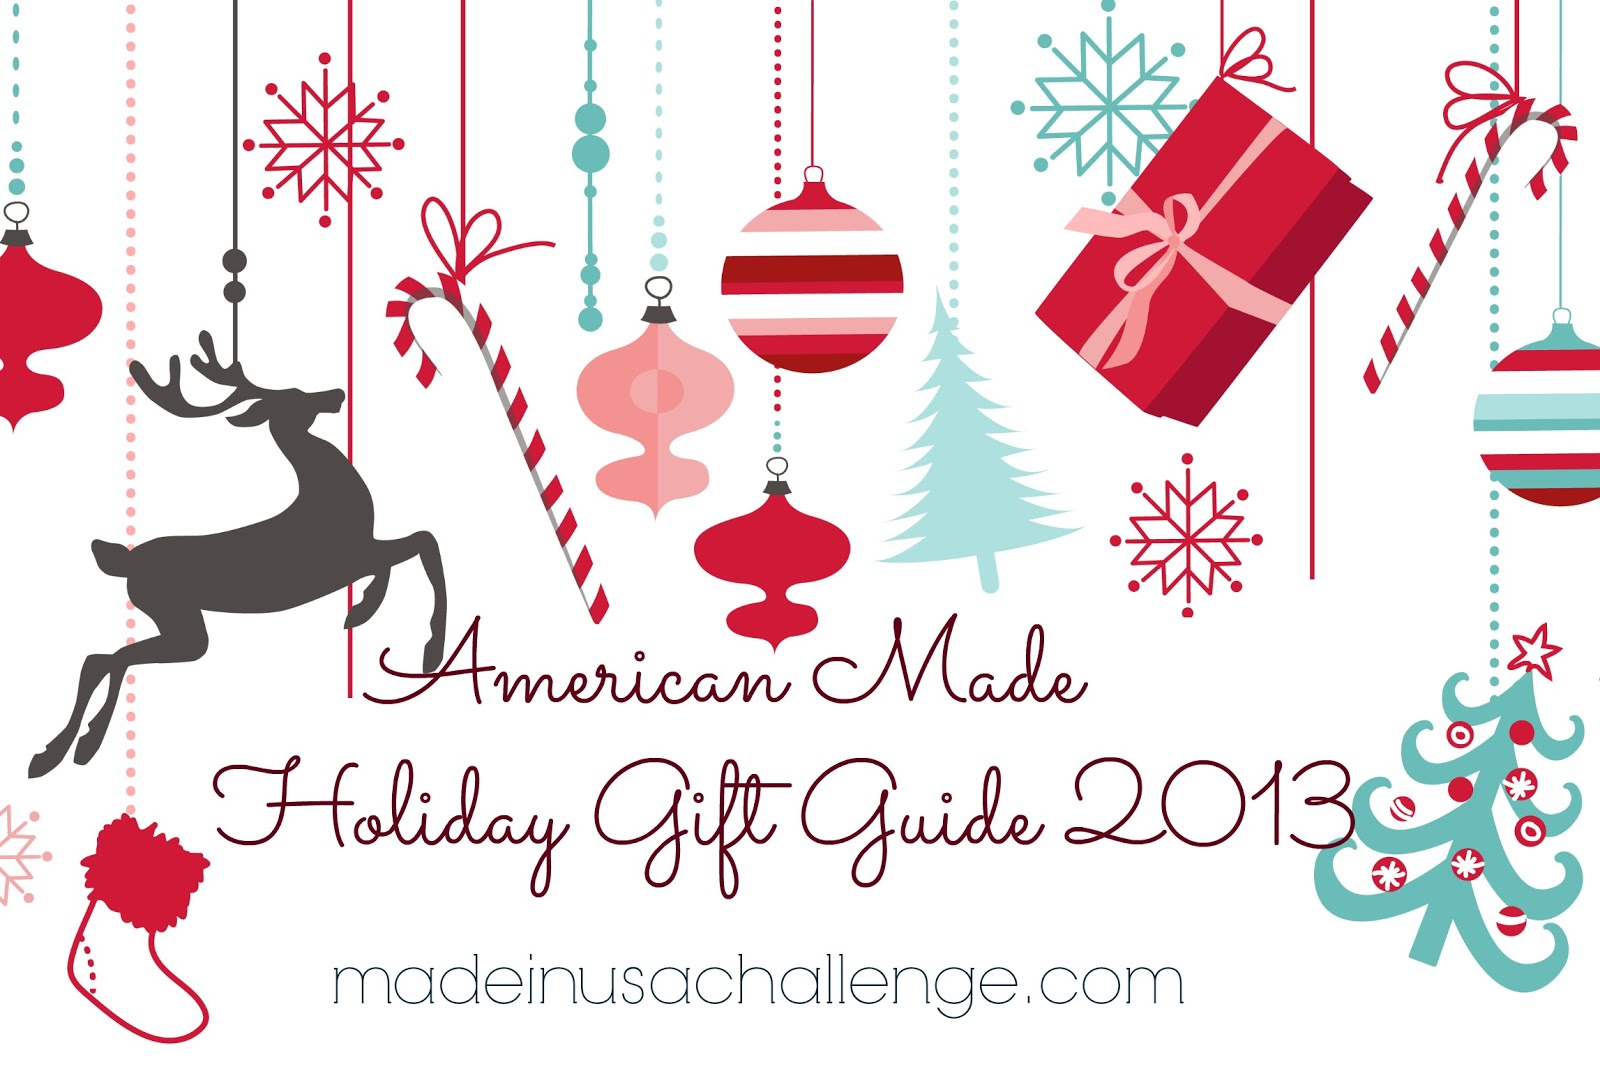 American Made Holiday Gift Guide 2013 Made in USA Challenge